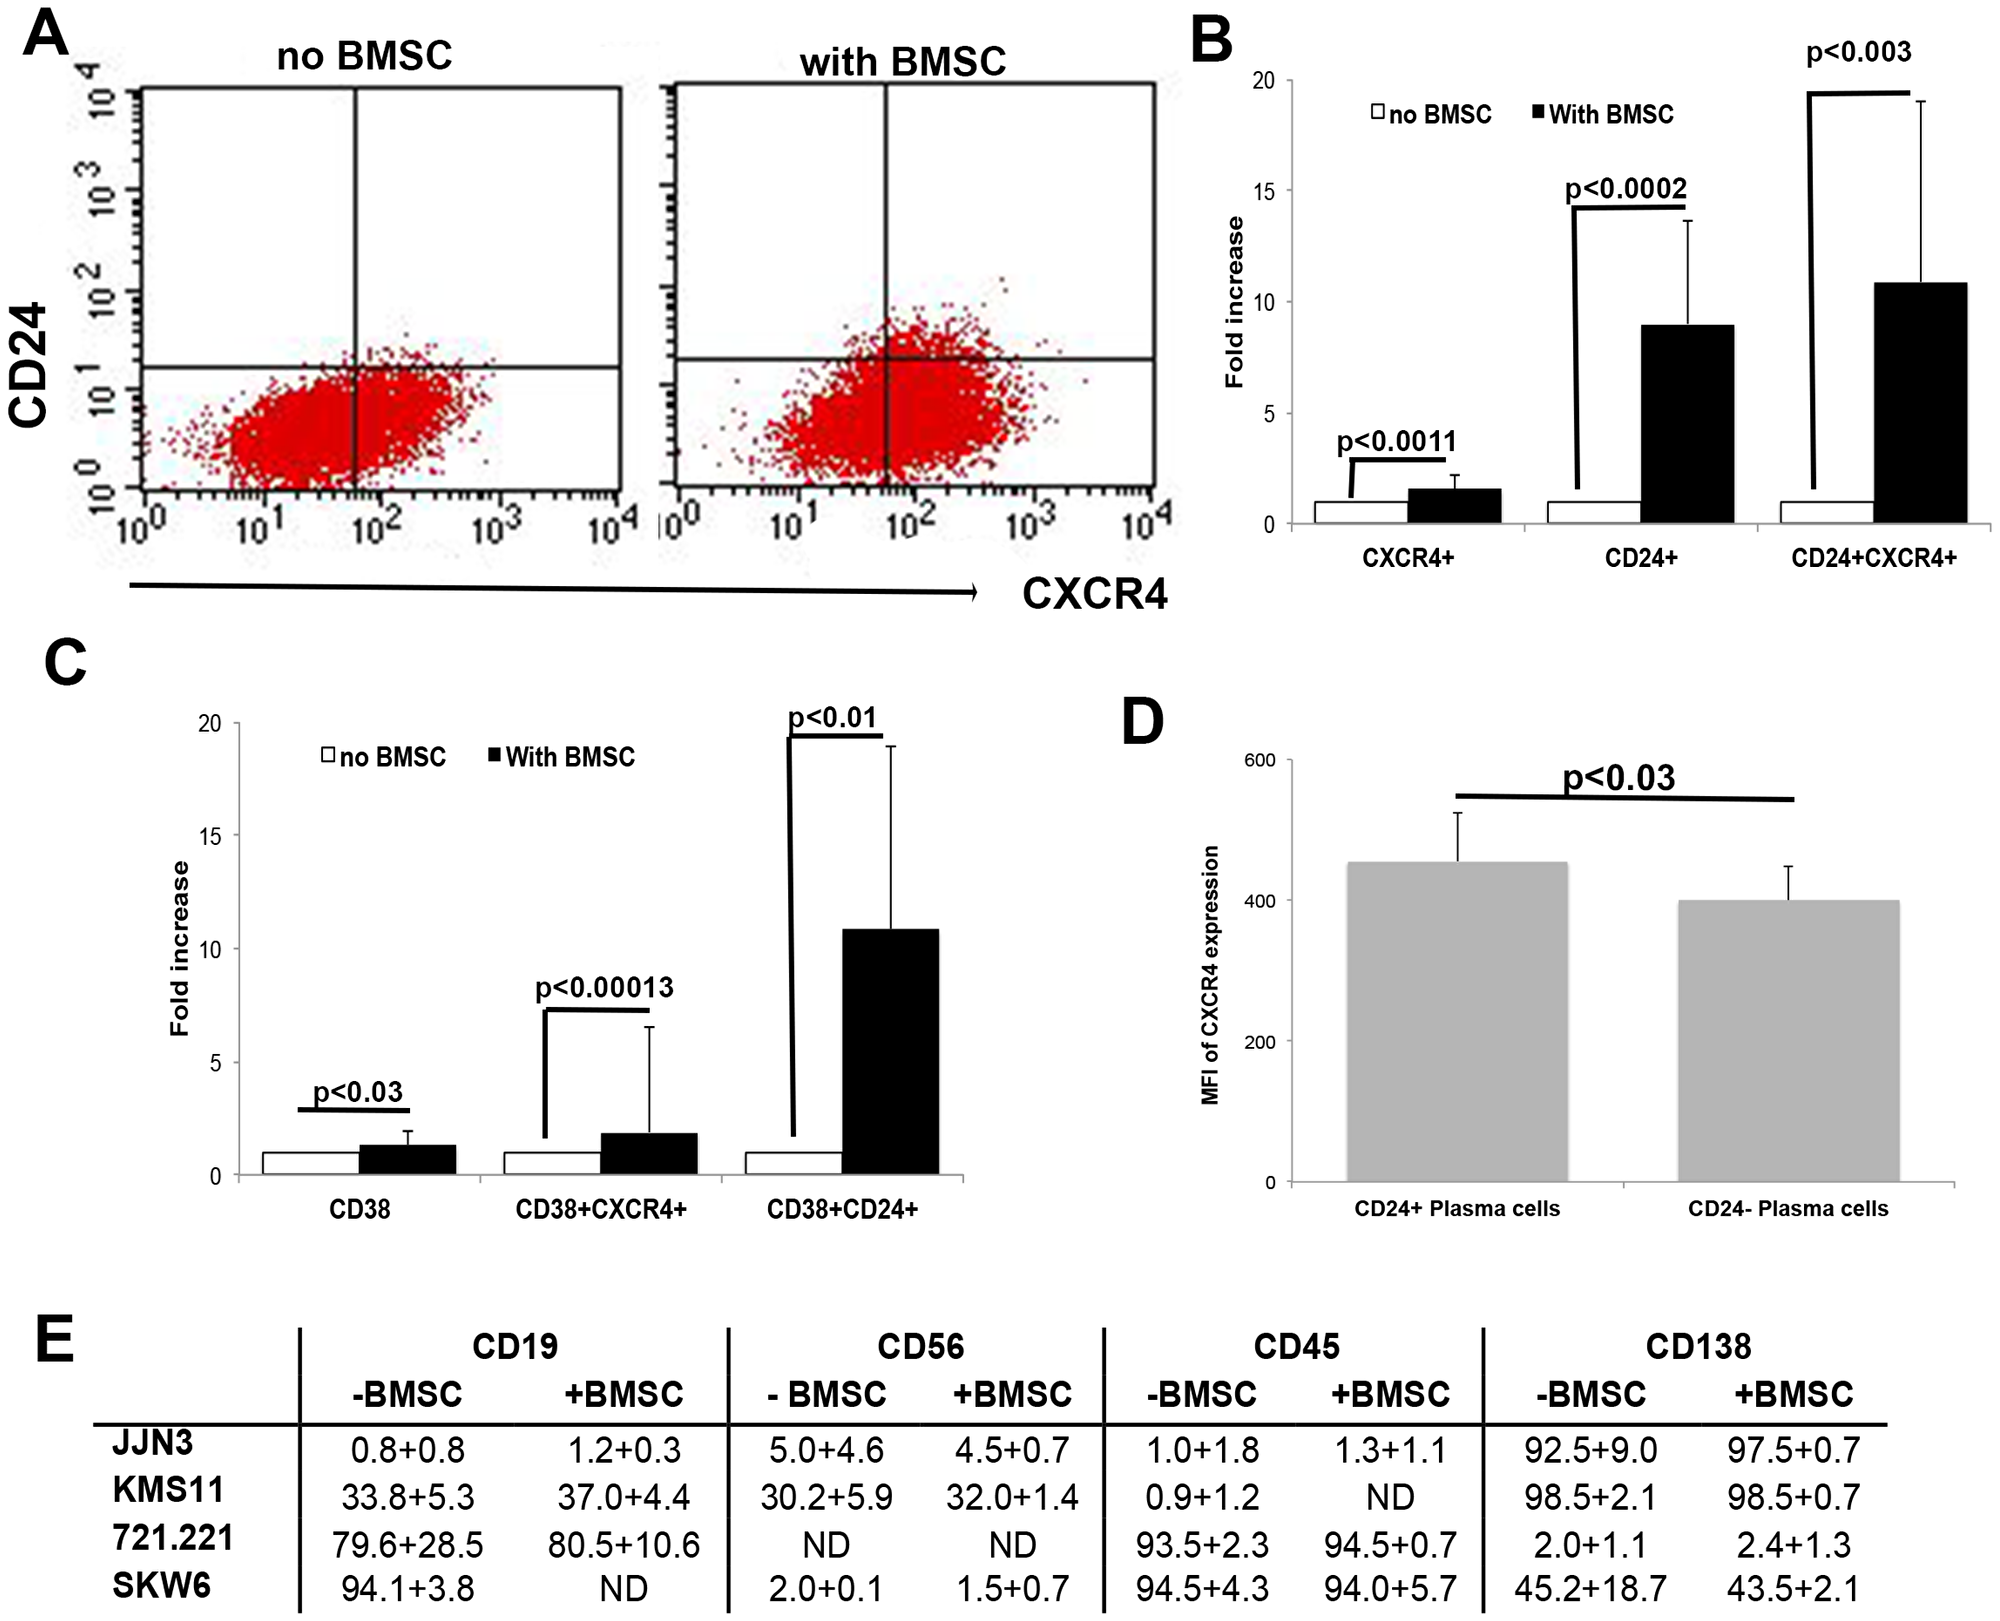 Up-regulation of CD24 correlates with CXCR4 and CD38 expression in MM cells.